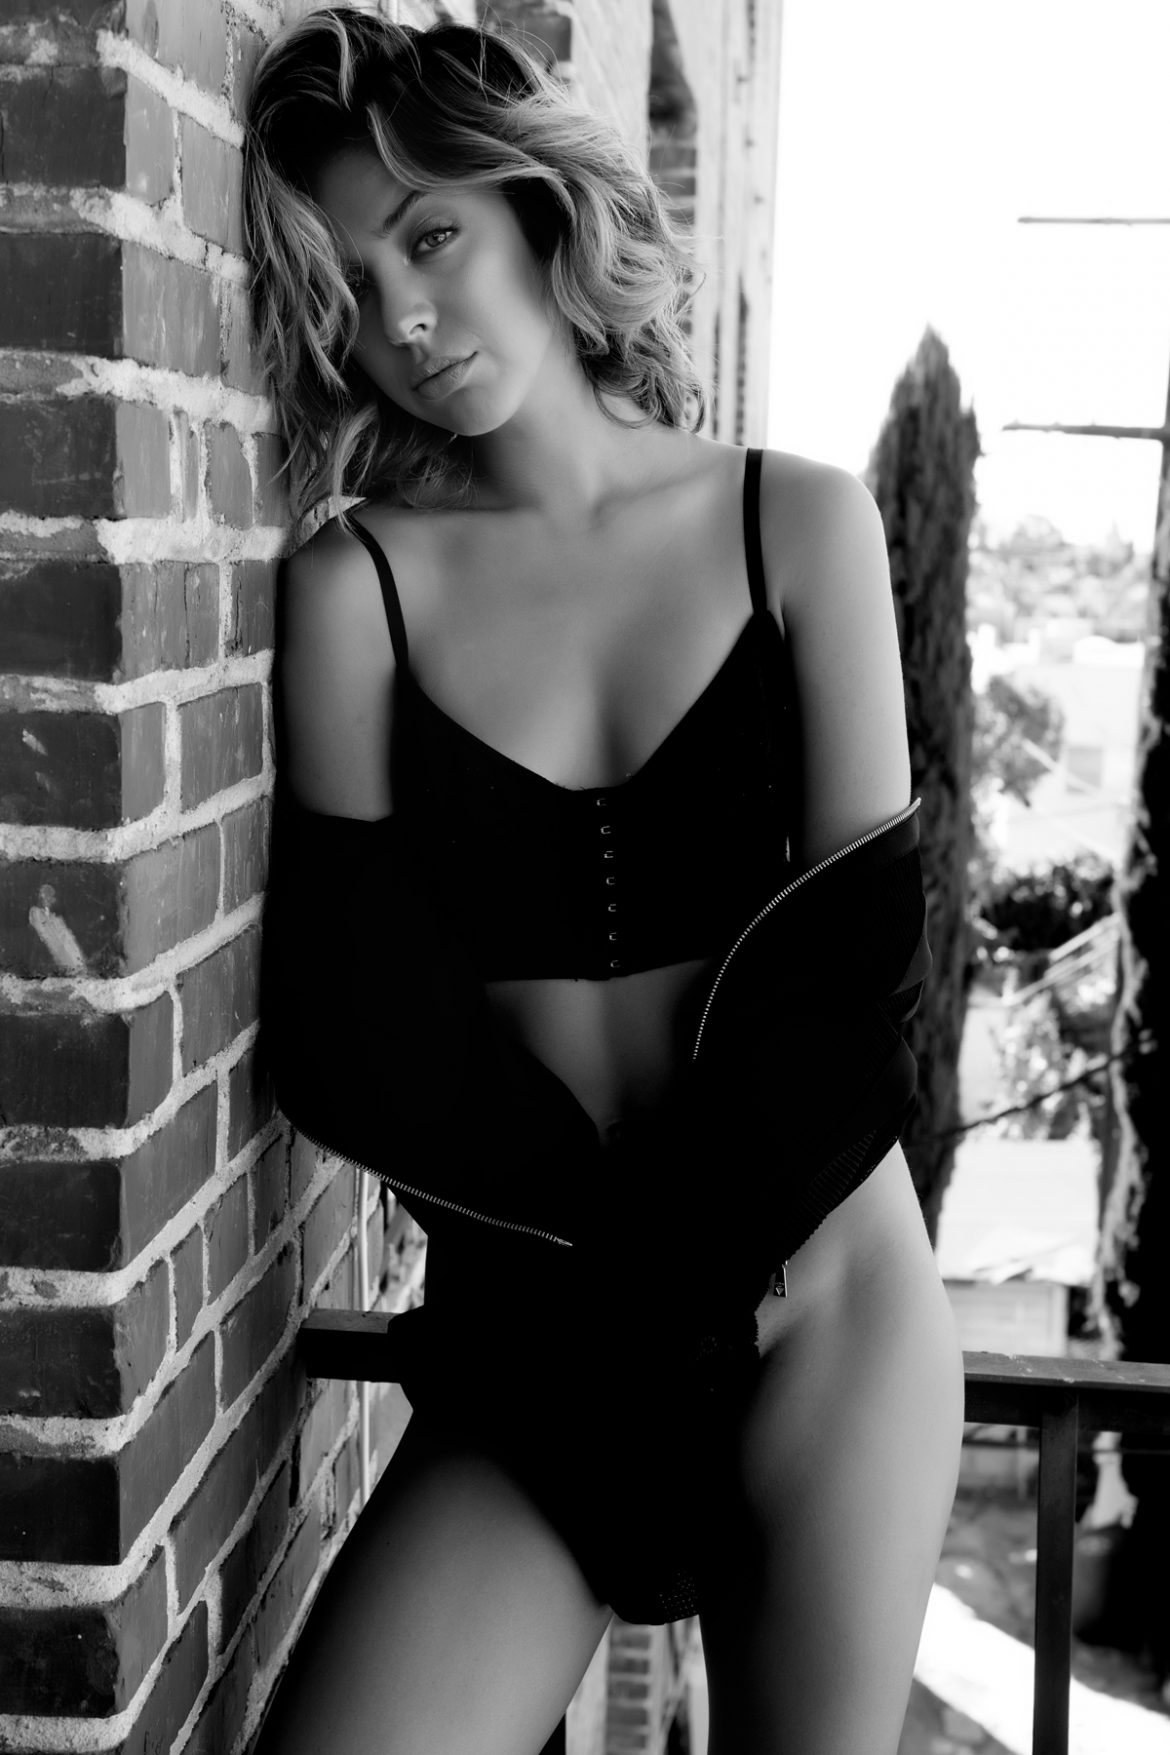 Ms. California Women  Nadia Mejia lionsmag lingerie fashion model editorial Chris Cruz body blackandwhite bikini beachwear   // lionsmag.com - premium nude photography magazine